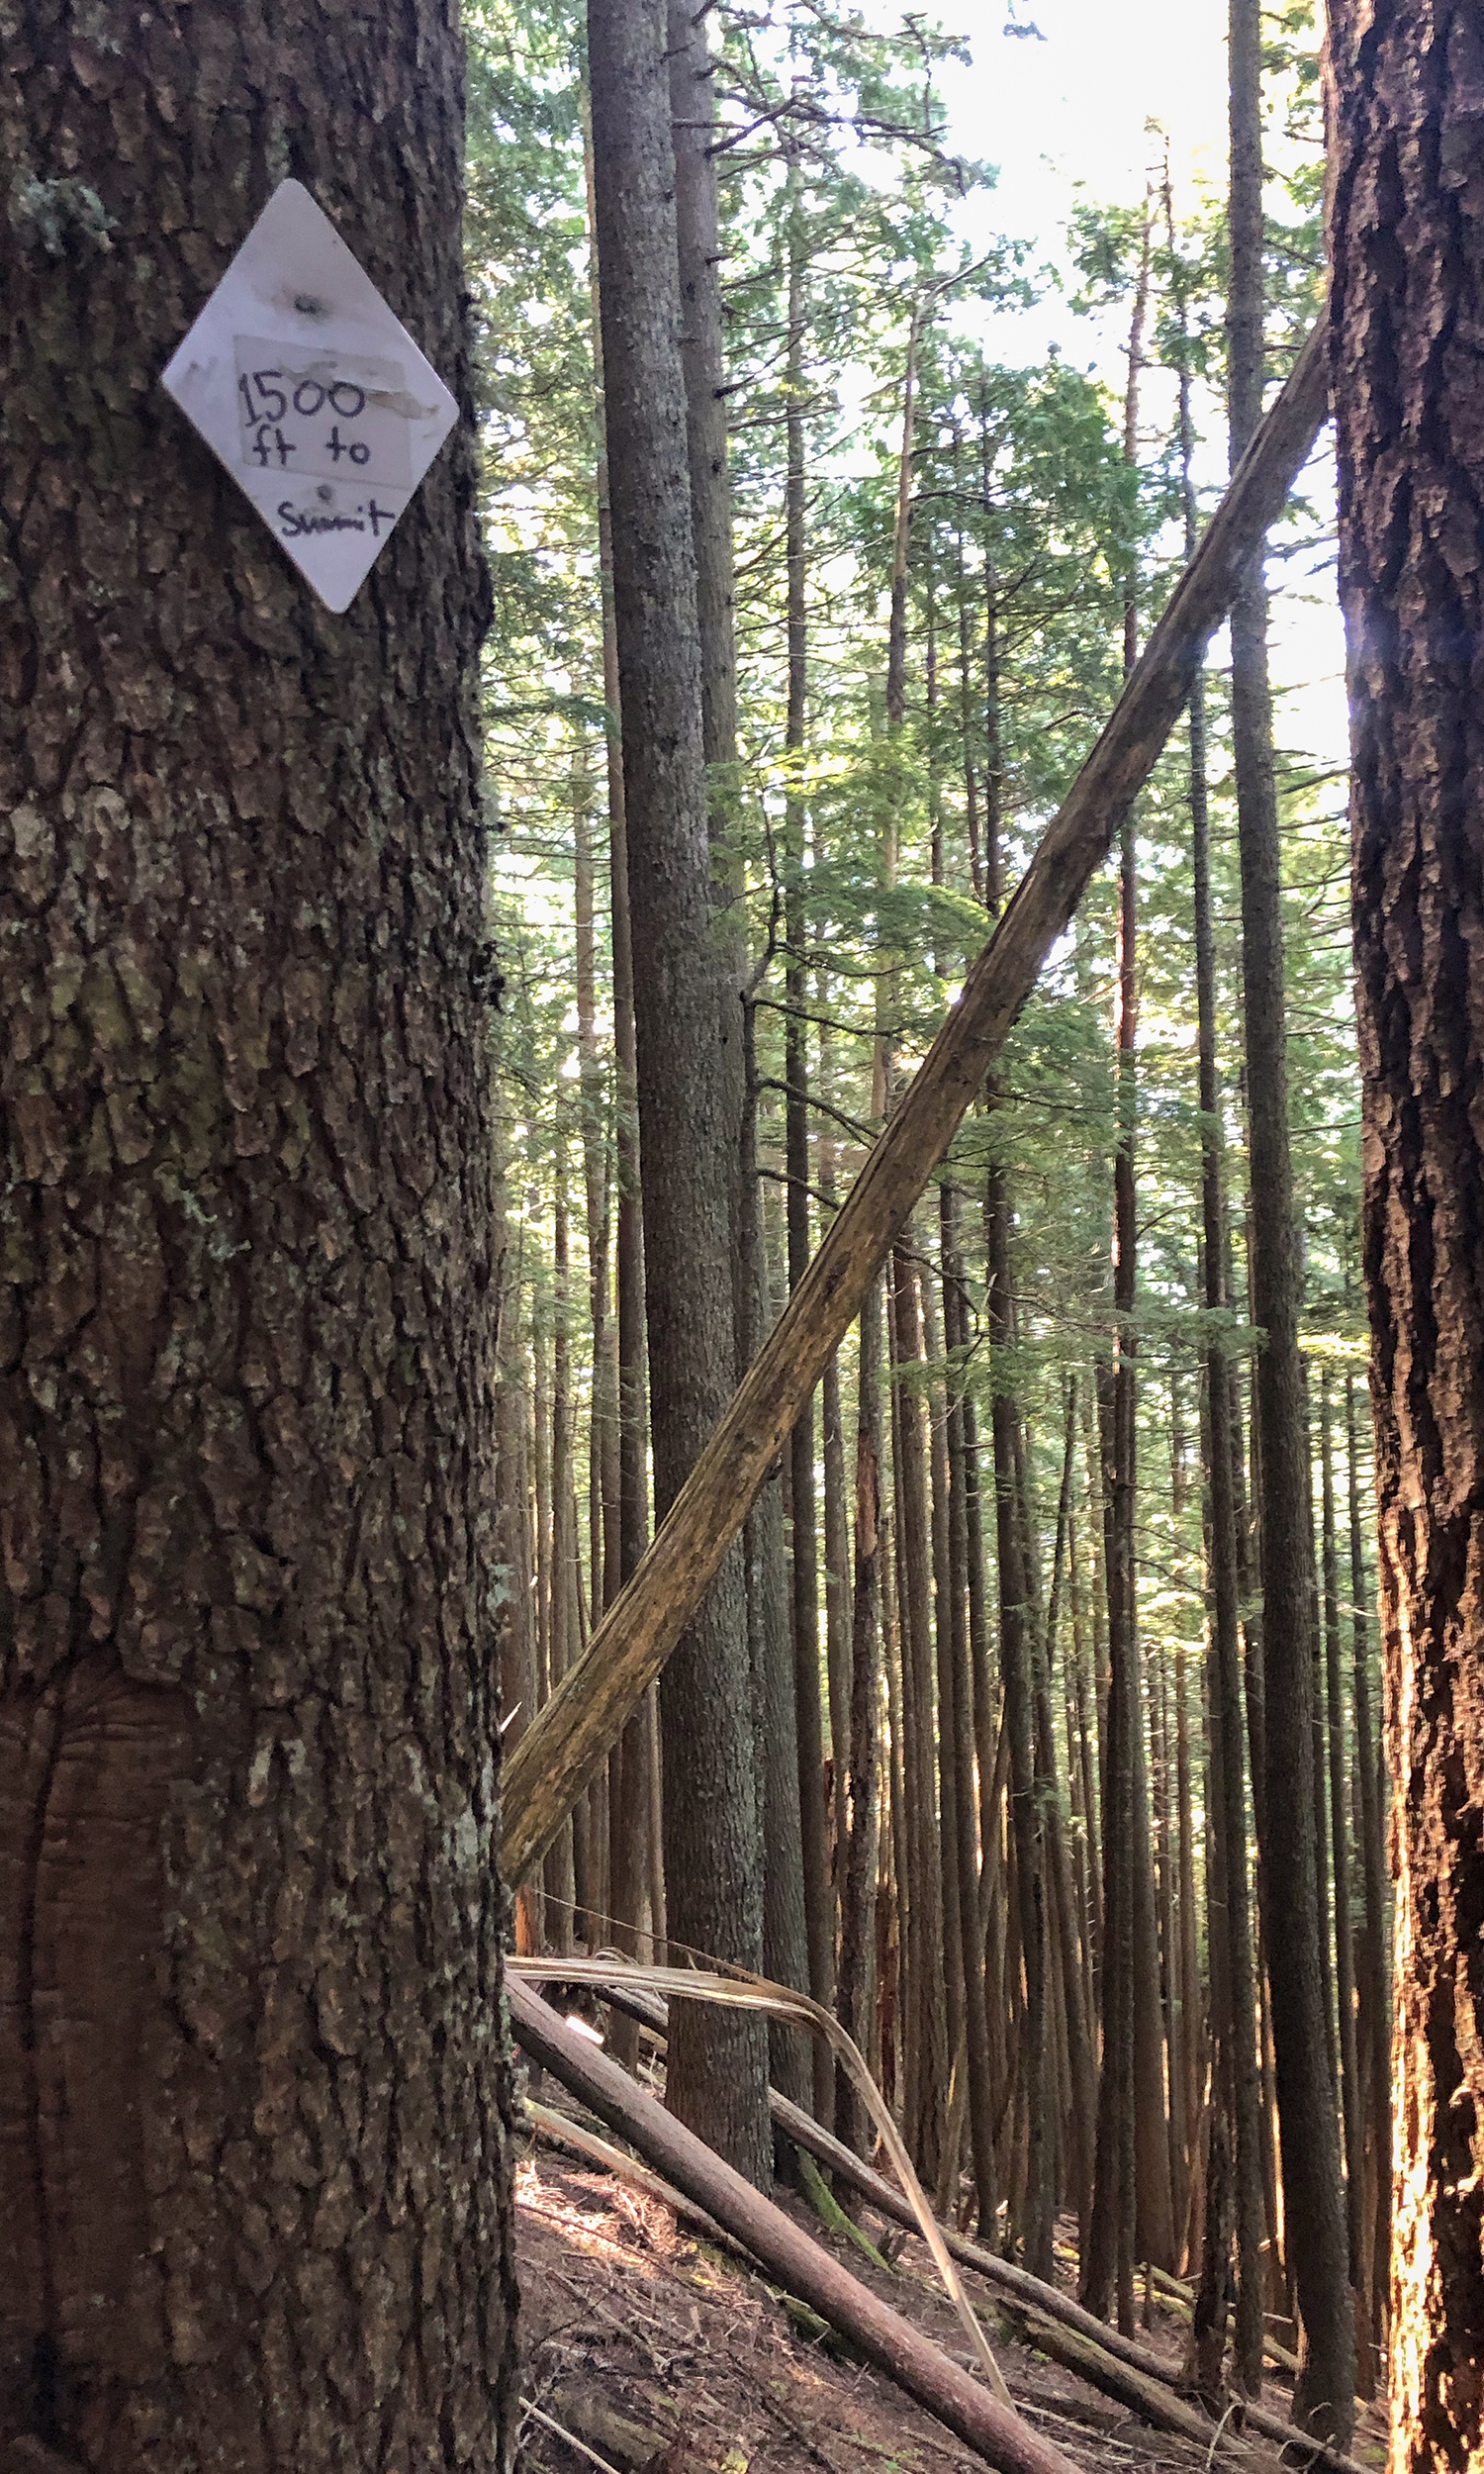 "<p>Take in a handful of trail mix beside this tree marked ""1500 ft to Summit,"" which translates to elevation remaining. (Image:{&nbsp;}Rachael A. Jones / Seattle Refined){&nbsp;}</p>"